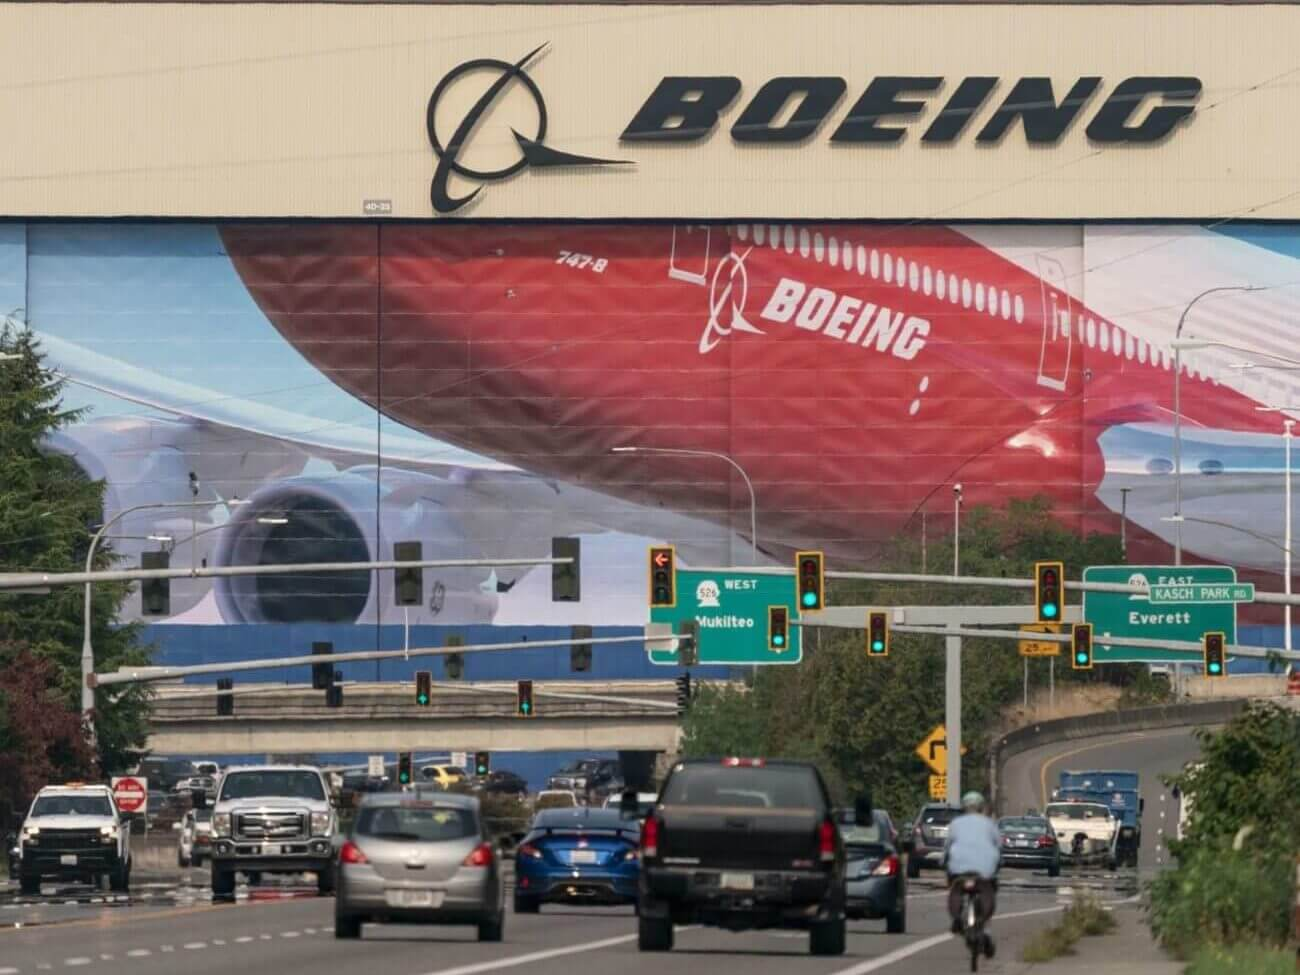 Boeing Is the Latest Firm to Crash out a Opposed Industry Ambiance